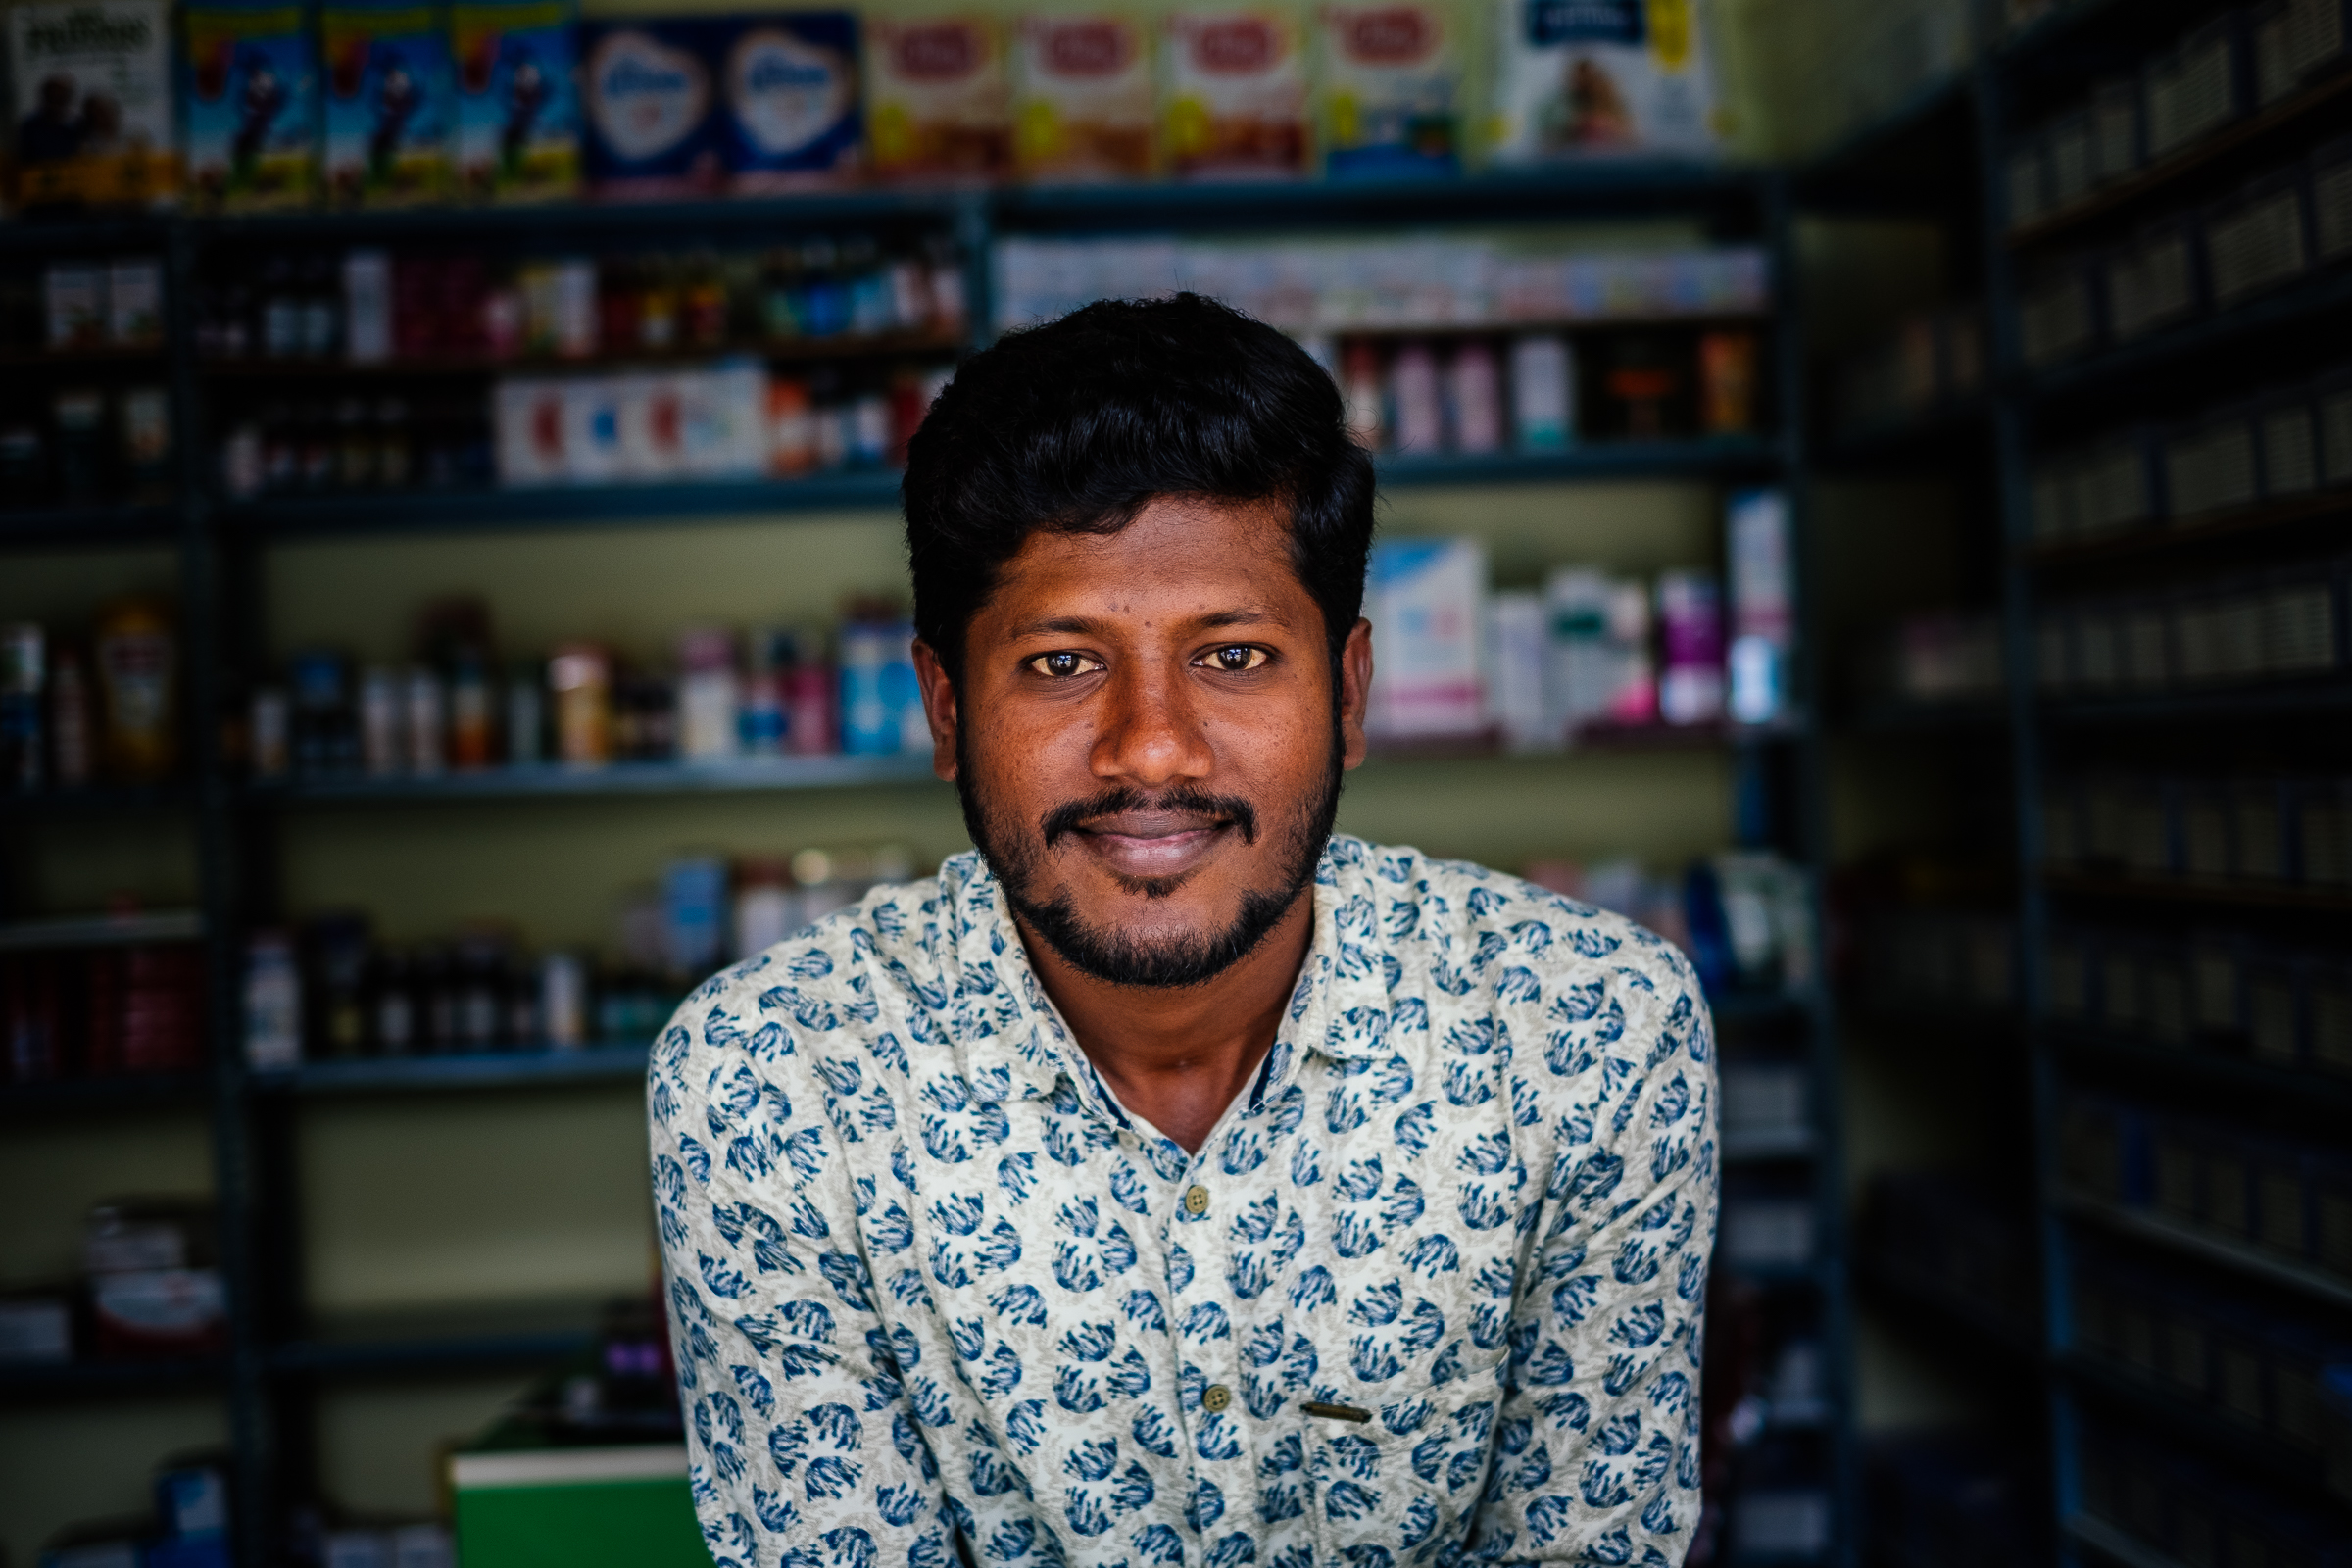 We did a co-creation session with Keval, a pharmacist in Bangalore who was doing his best to do the right thing and educate his patients.